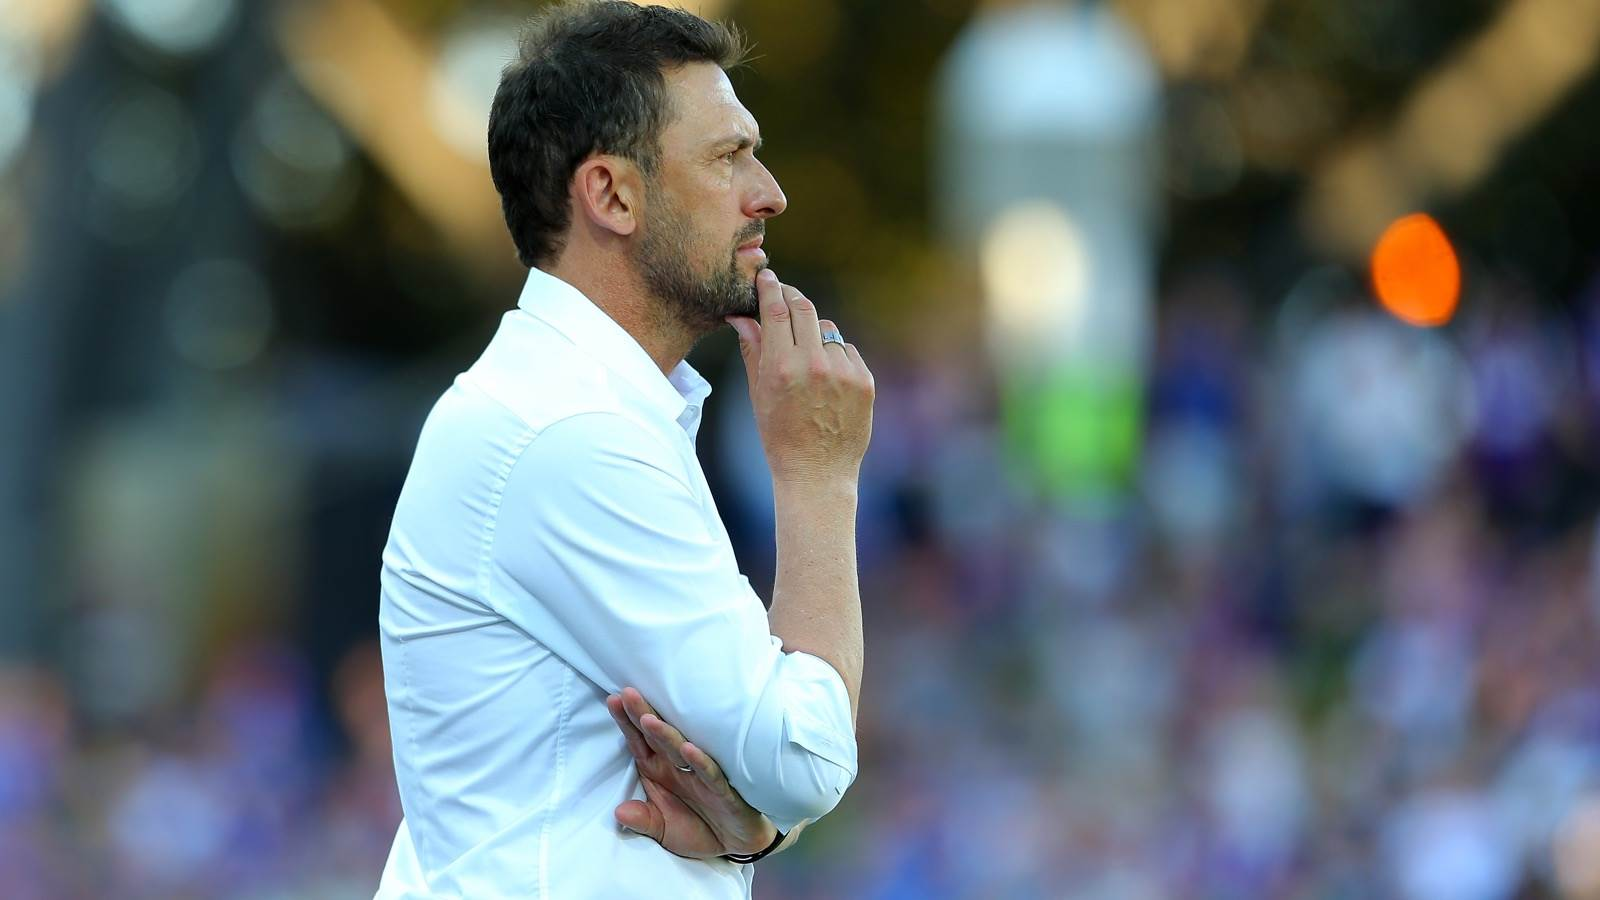 Glory coach calls for fewer day games